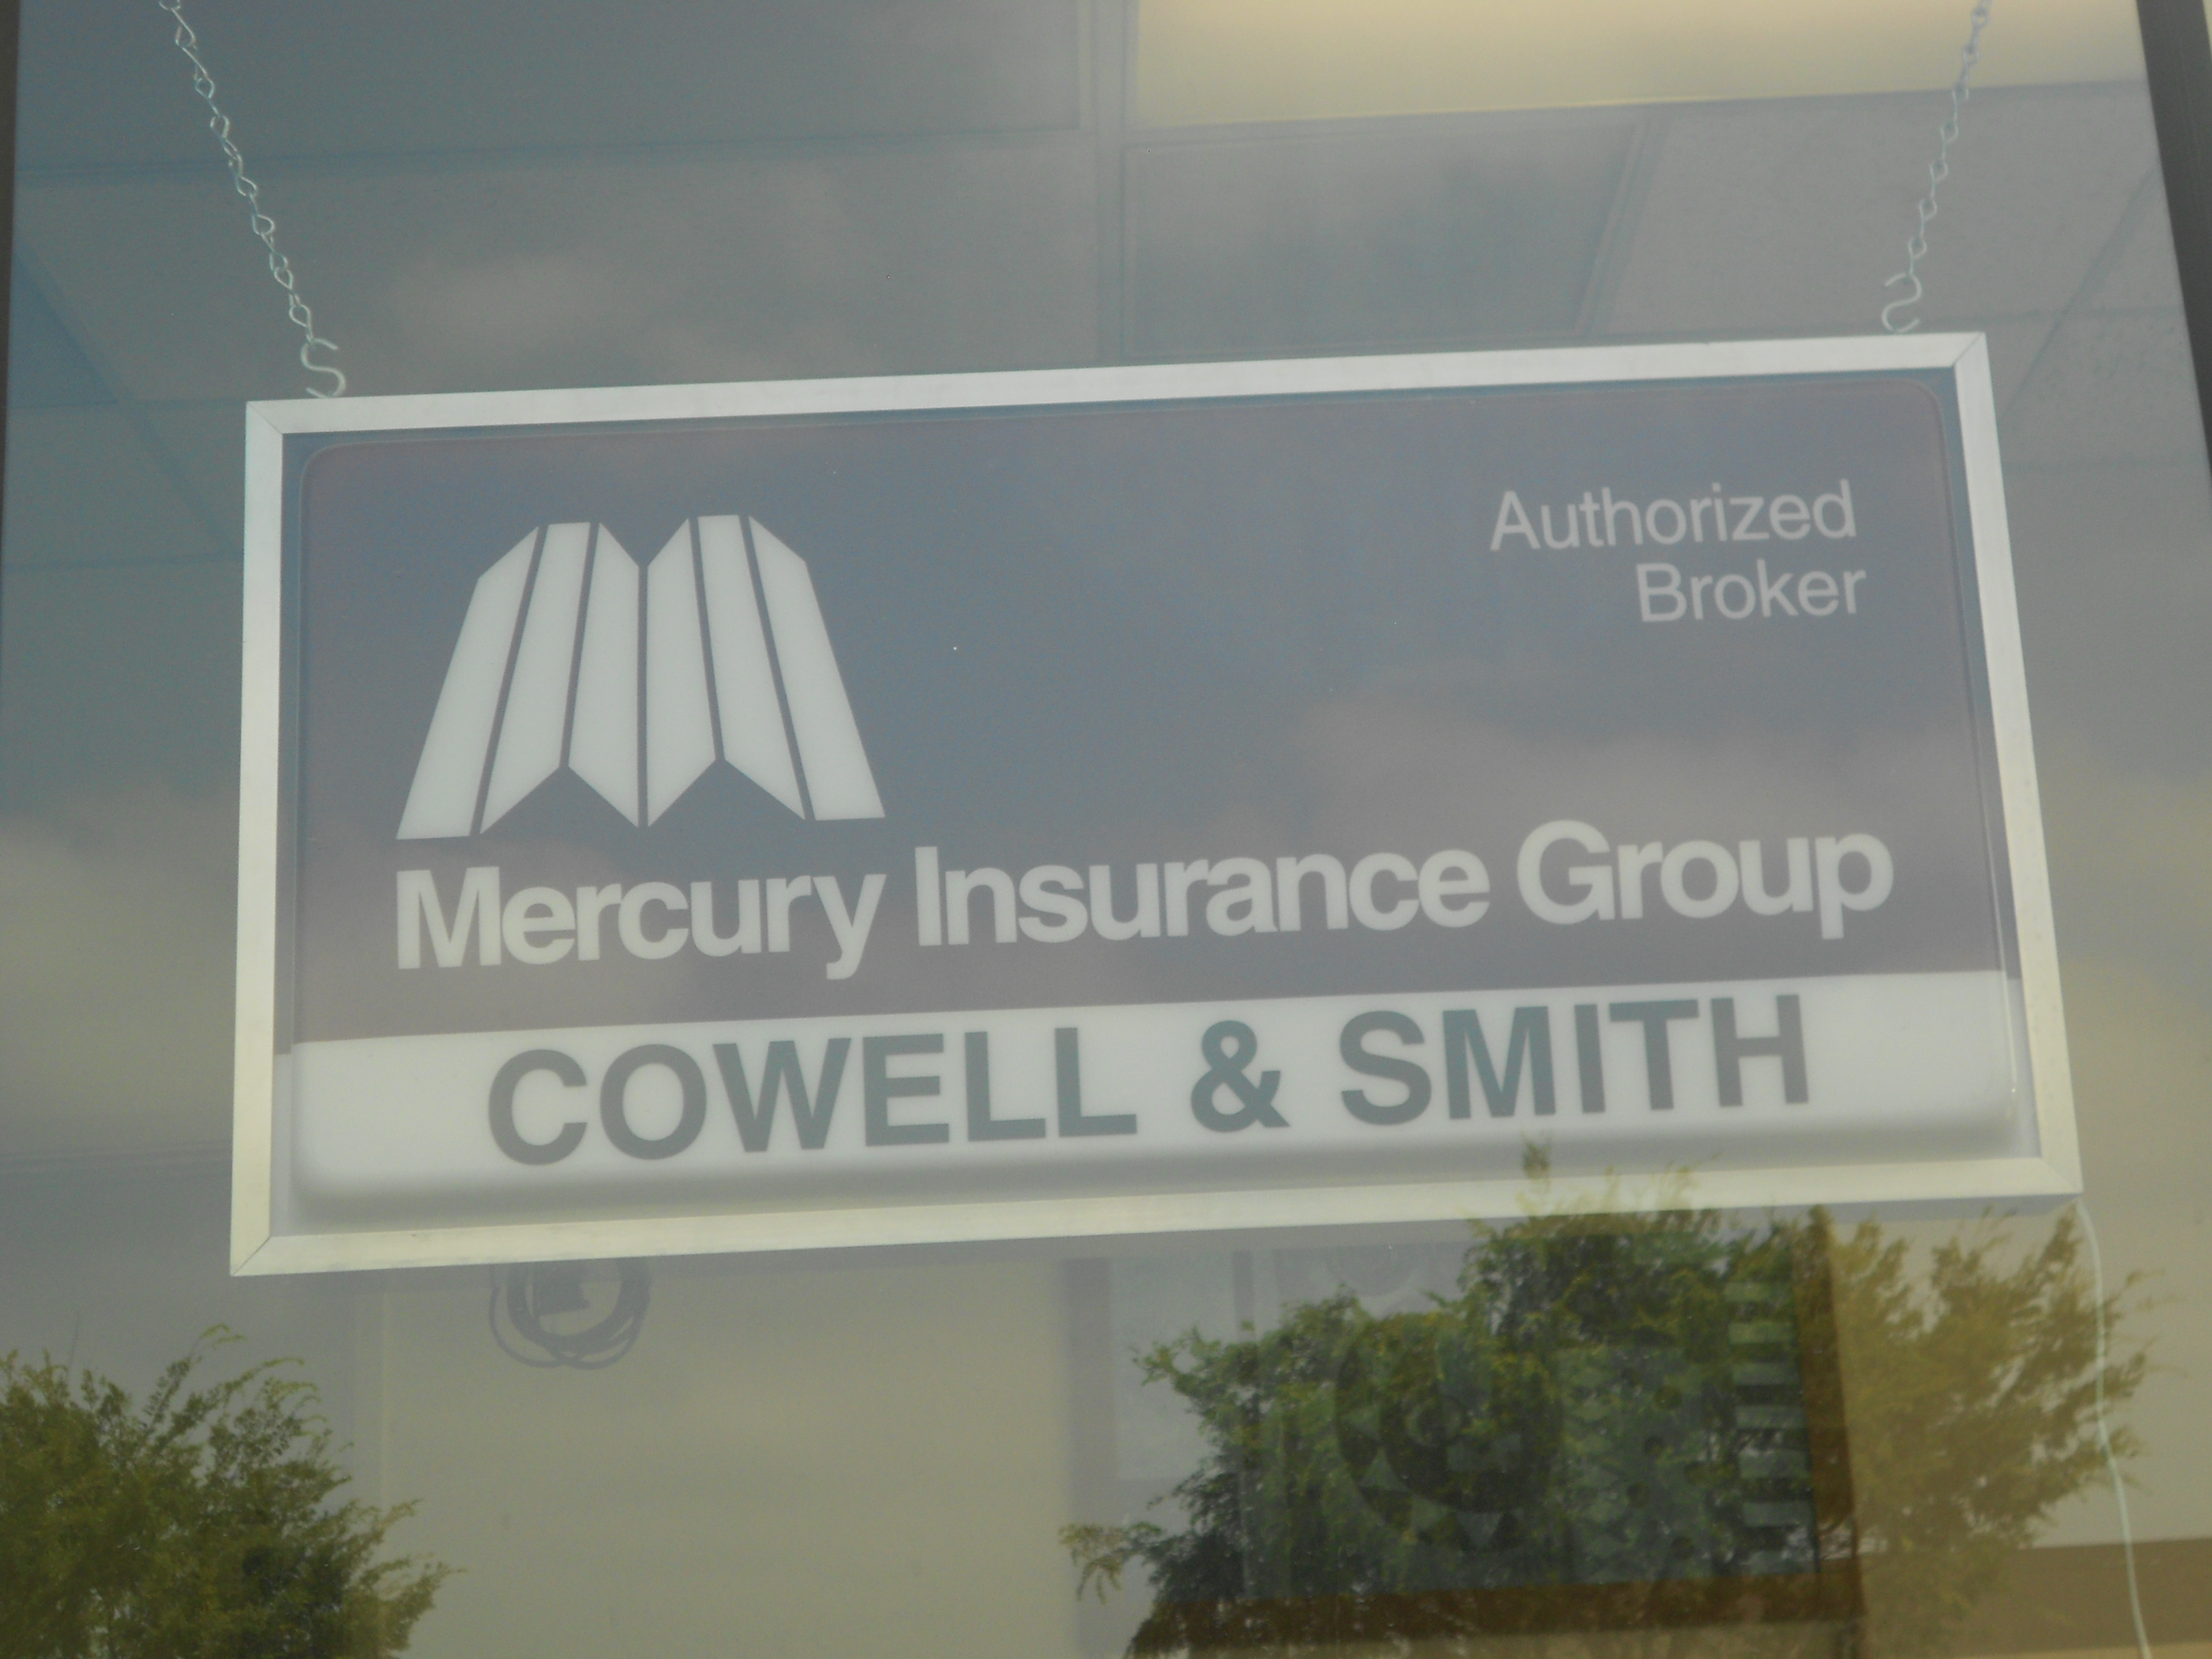 Progressive Agent Near Me >> Cowell & Smith Insurance Agency Coupons near me in Salinas | 8coupons